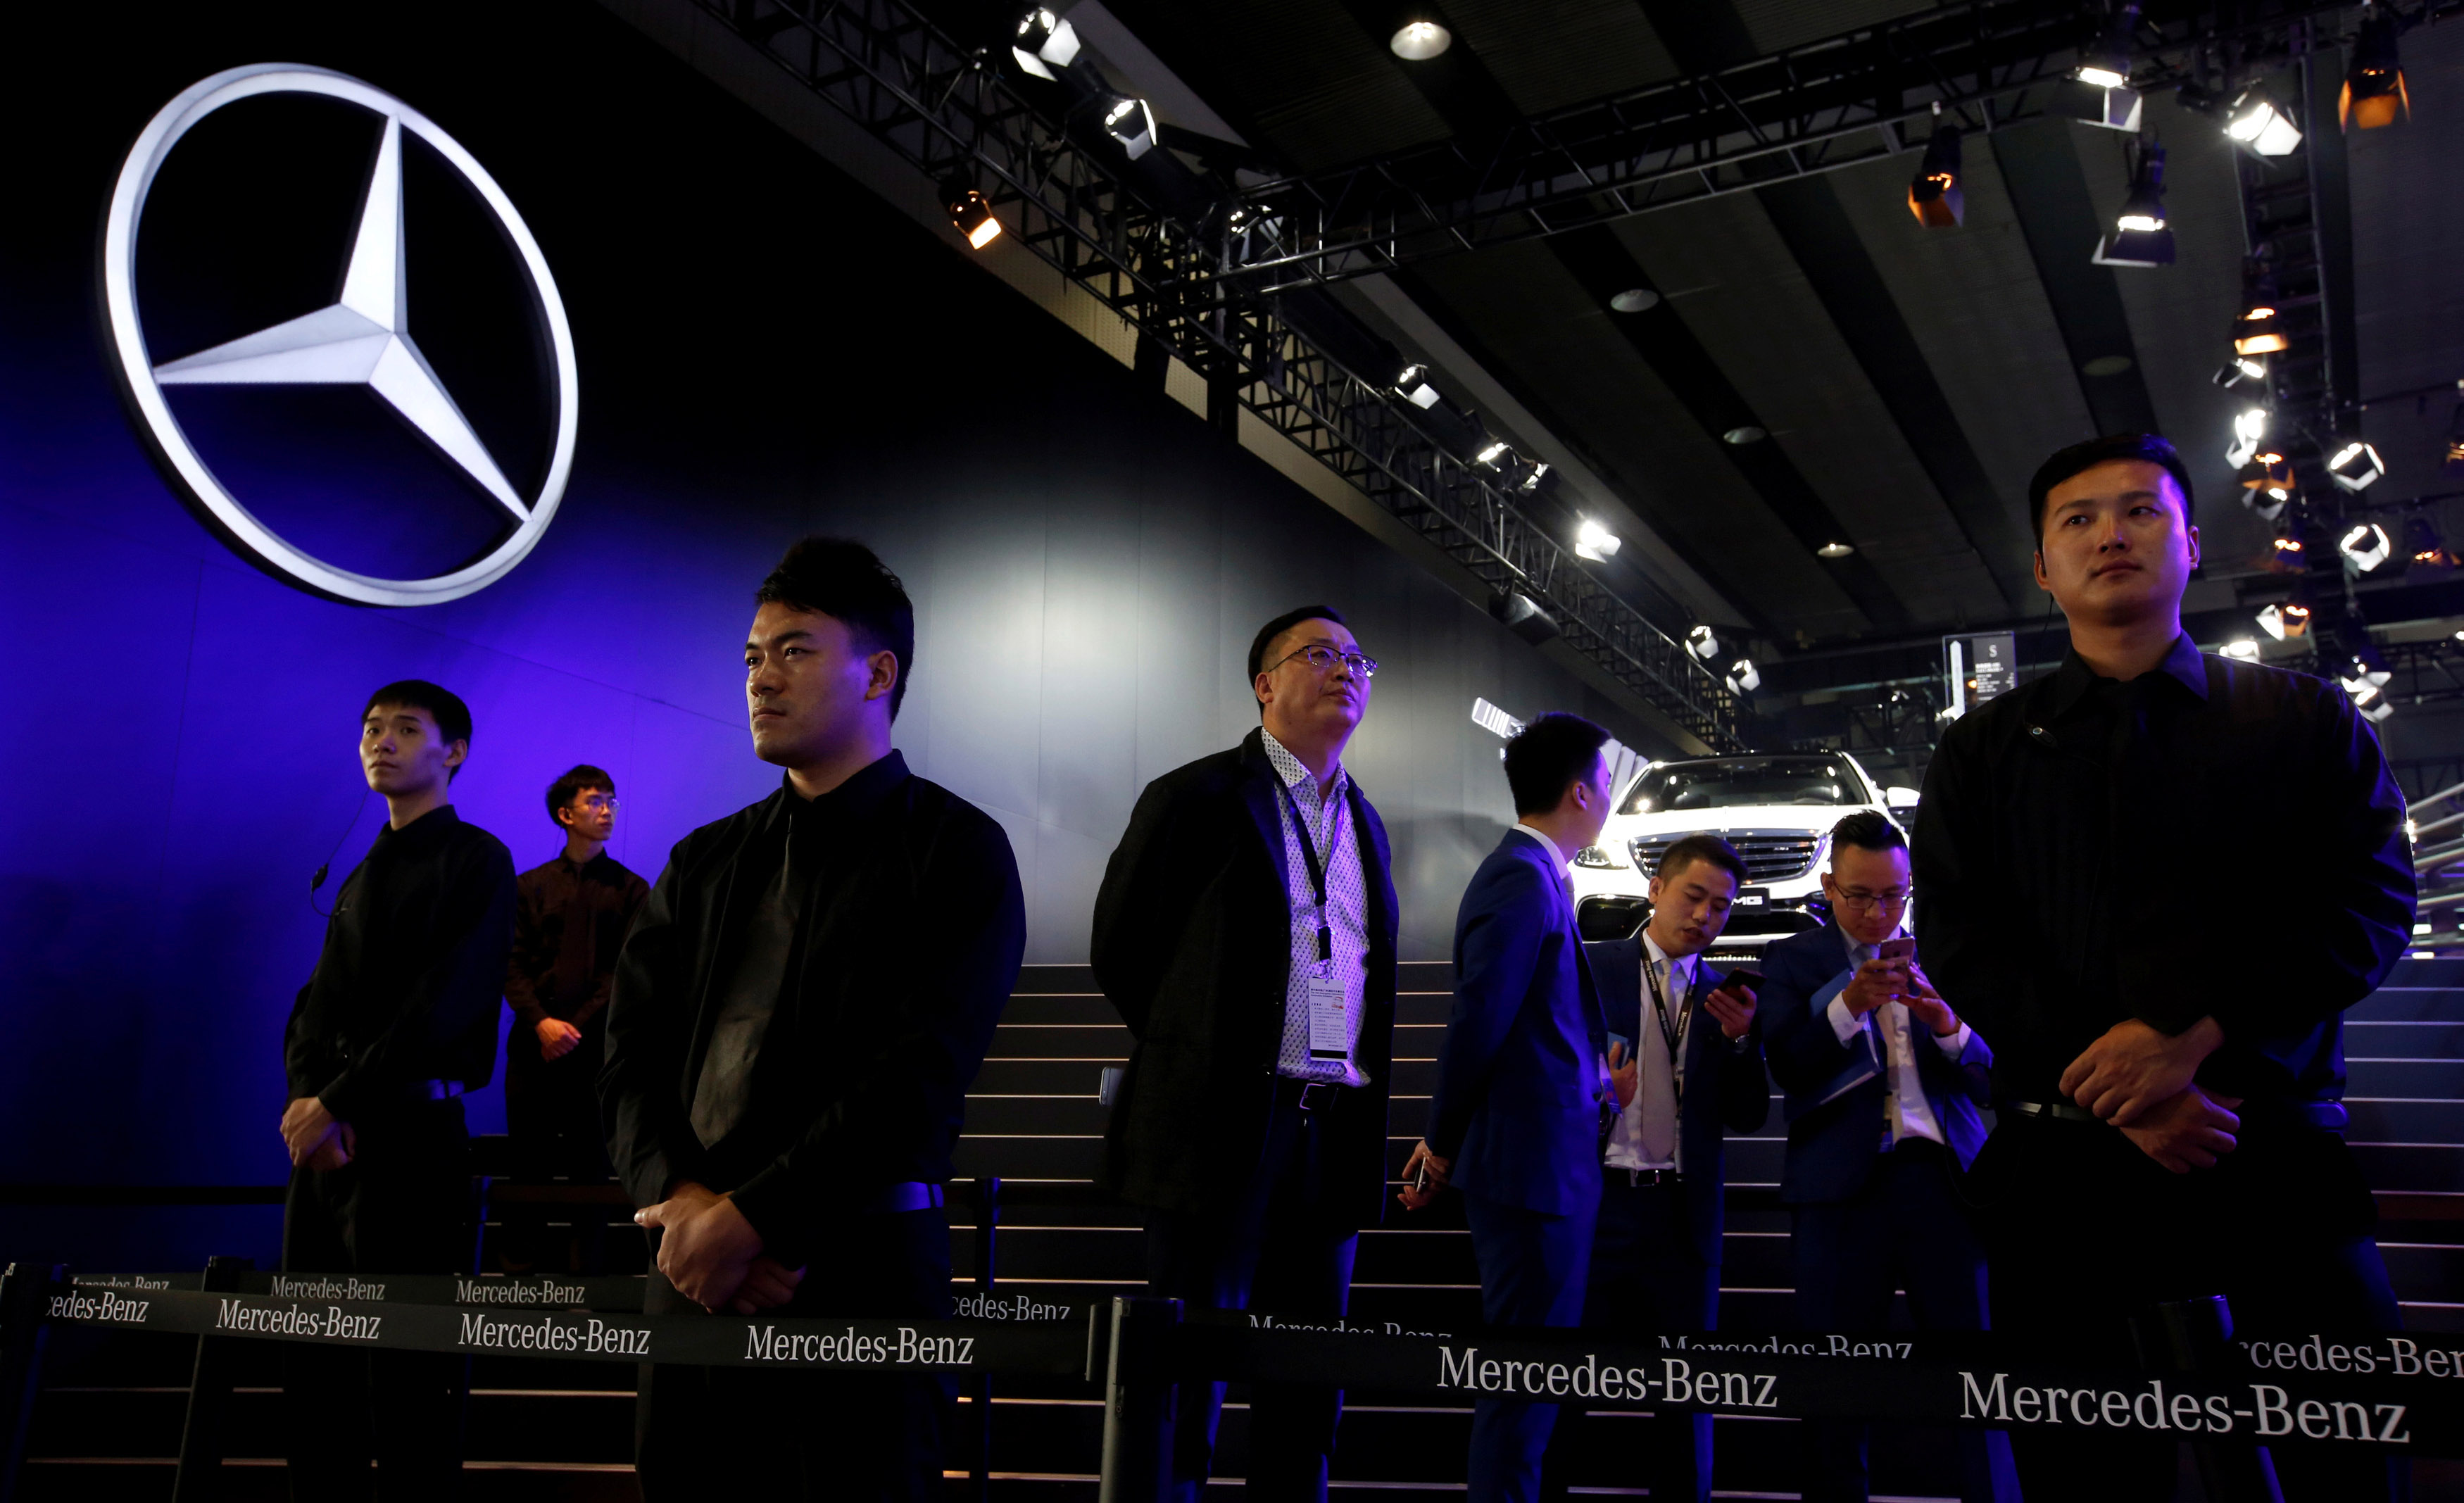 Security staff guarding the Mercedes-Benz booth at an autoshow in Guangzhou, China, in November 2017